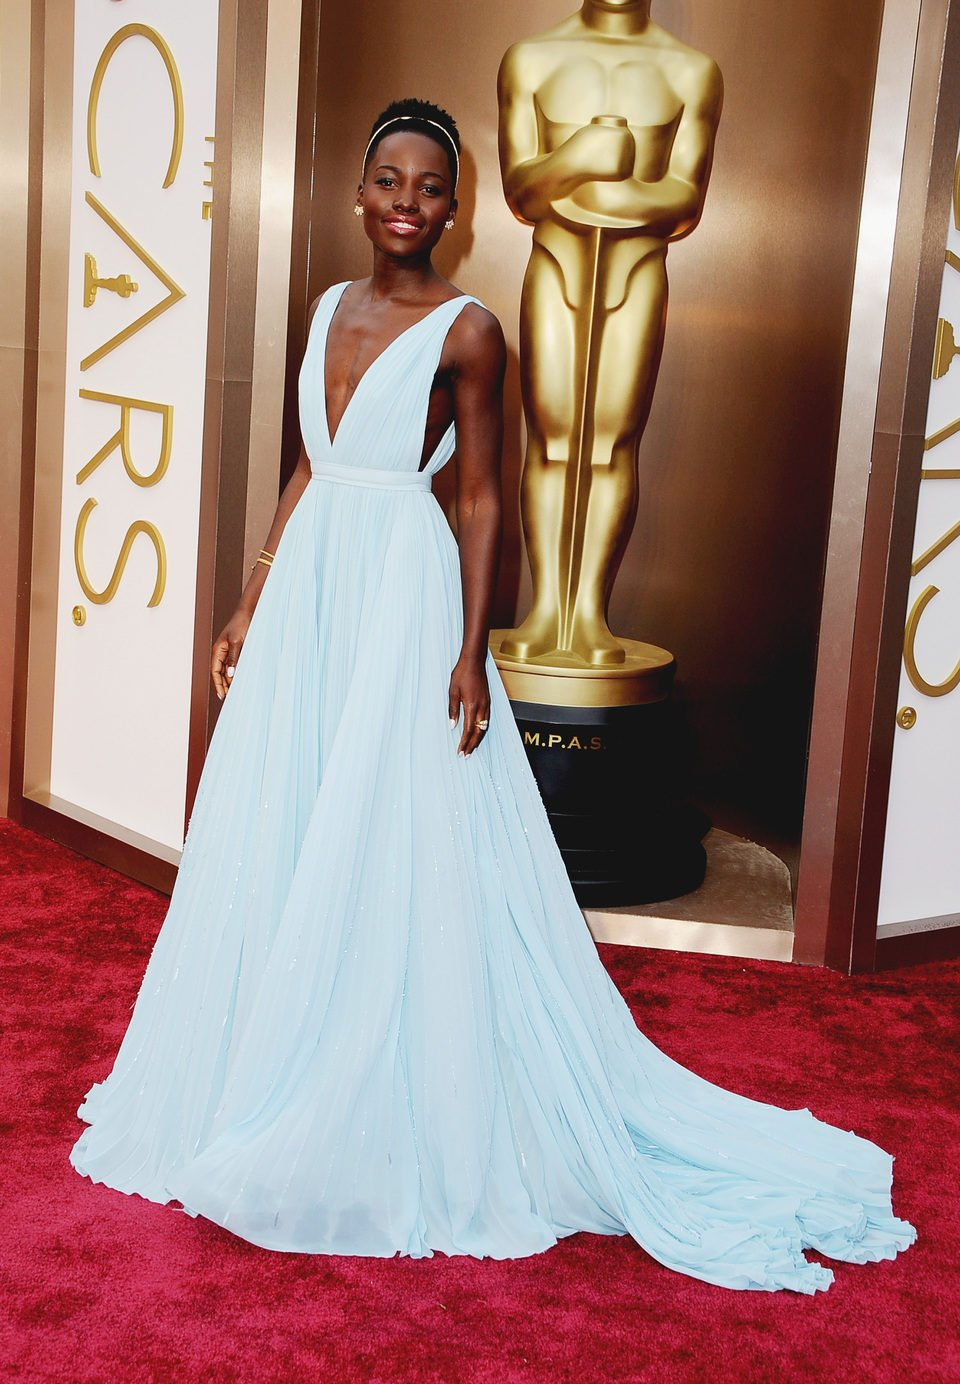 Lupita Nyong'o at the 2014 Oscars